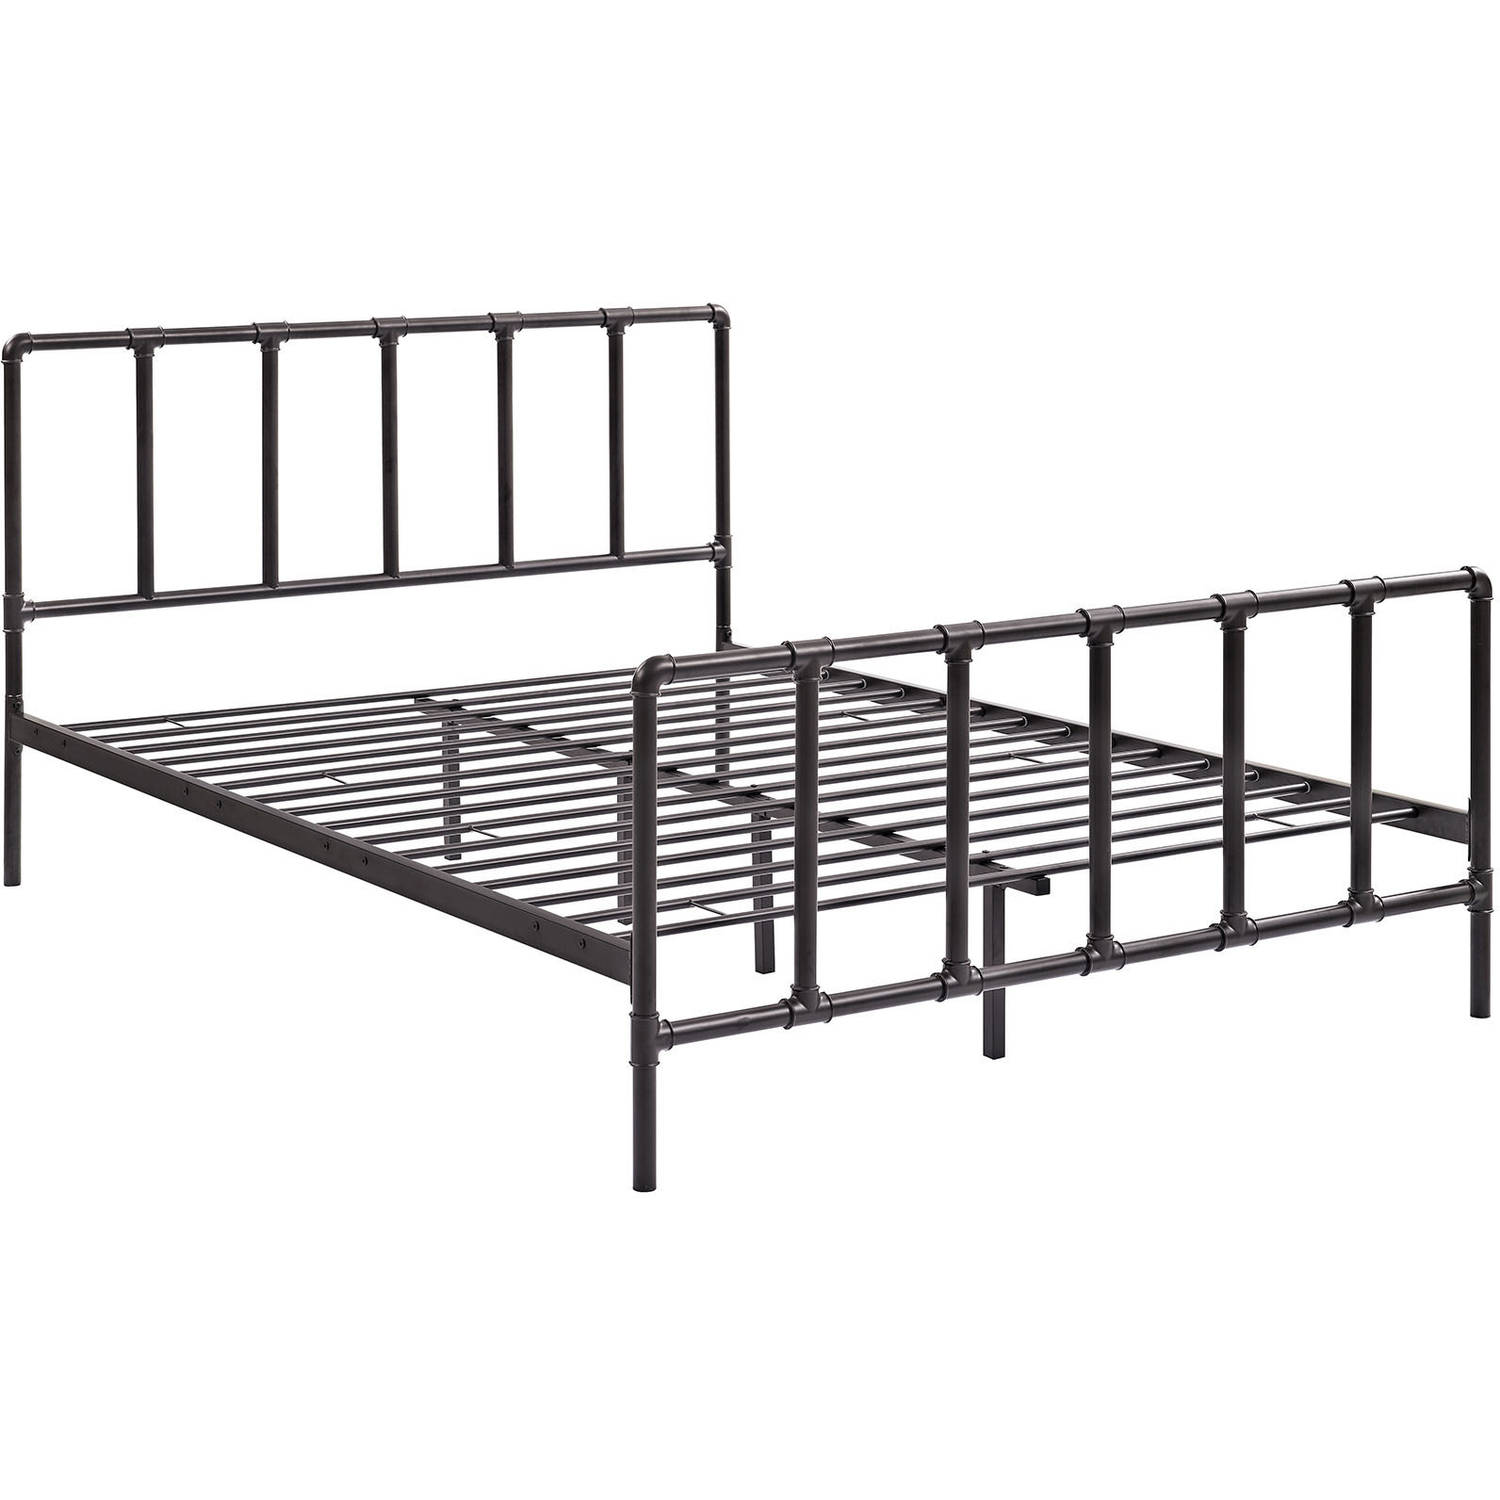 Modway Dower Queen Stainless Steel Platform Bed, Multiple Colors